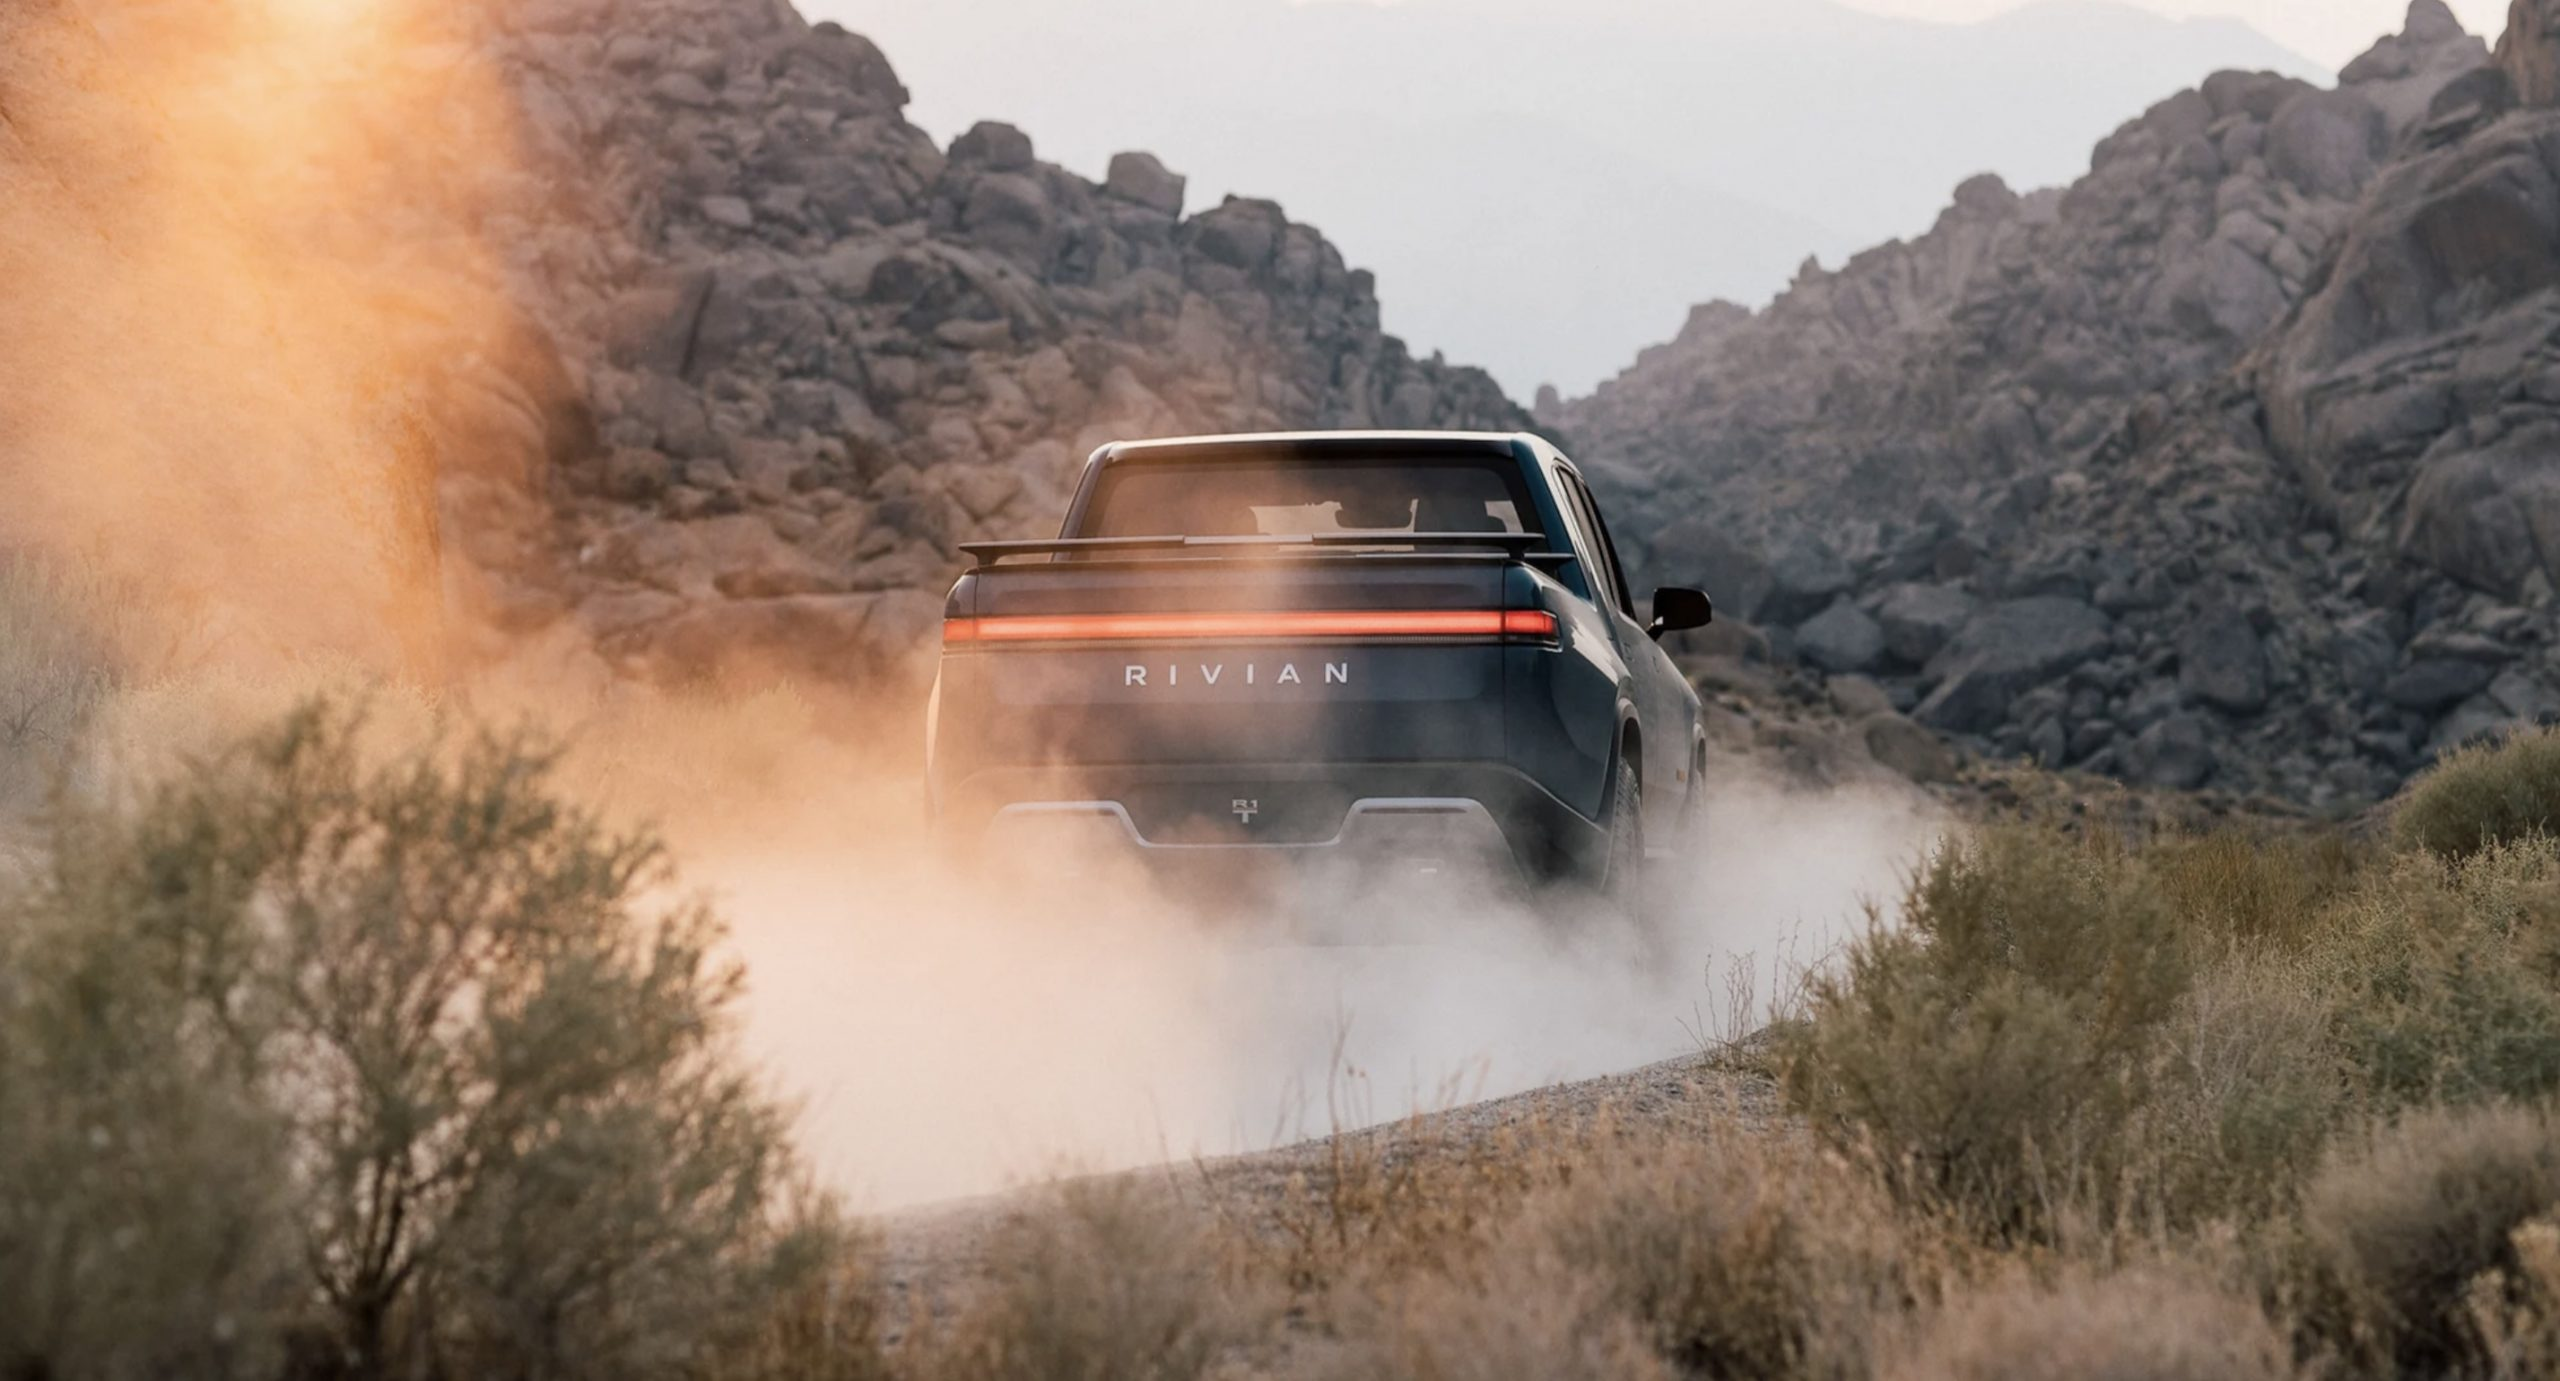 rivian-r1t-test-drive-off-road-capability